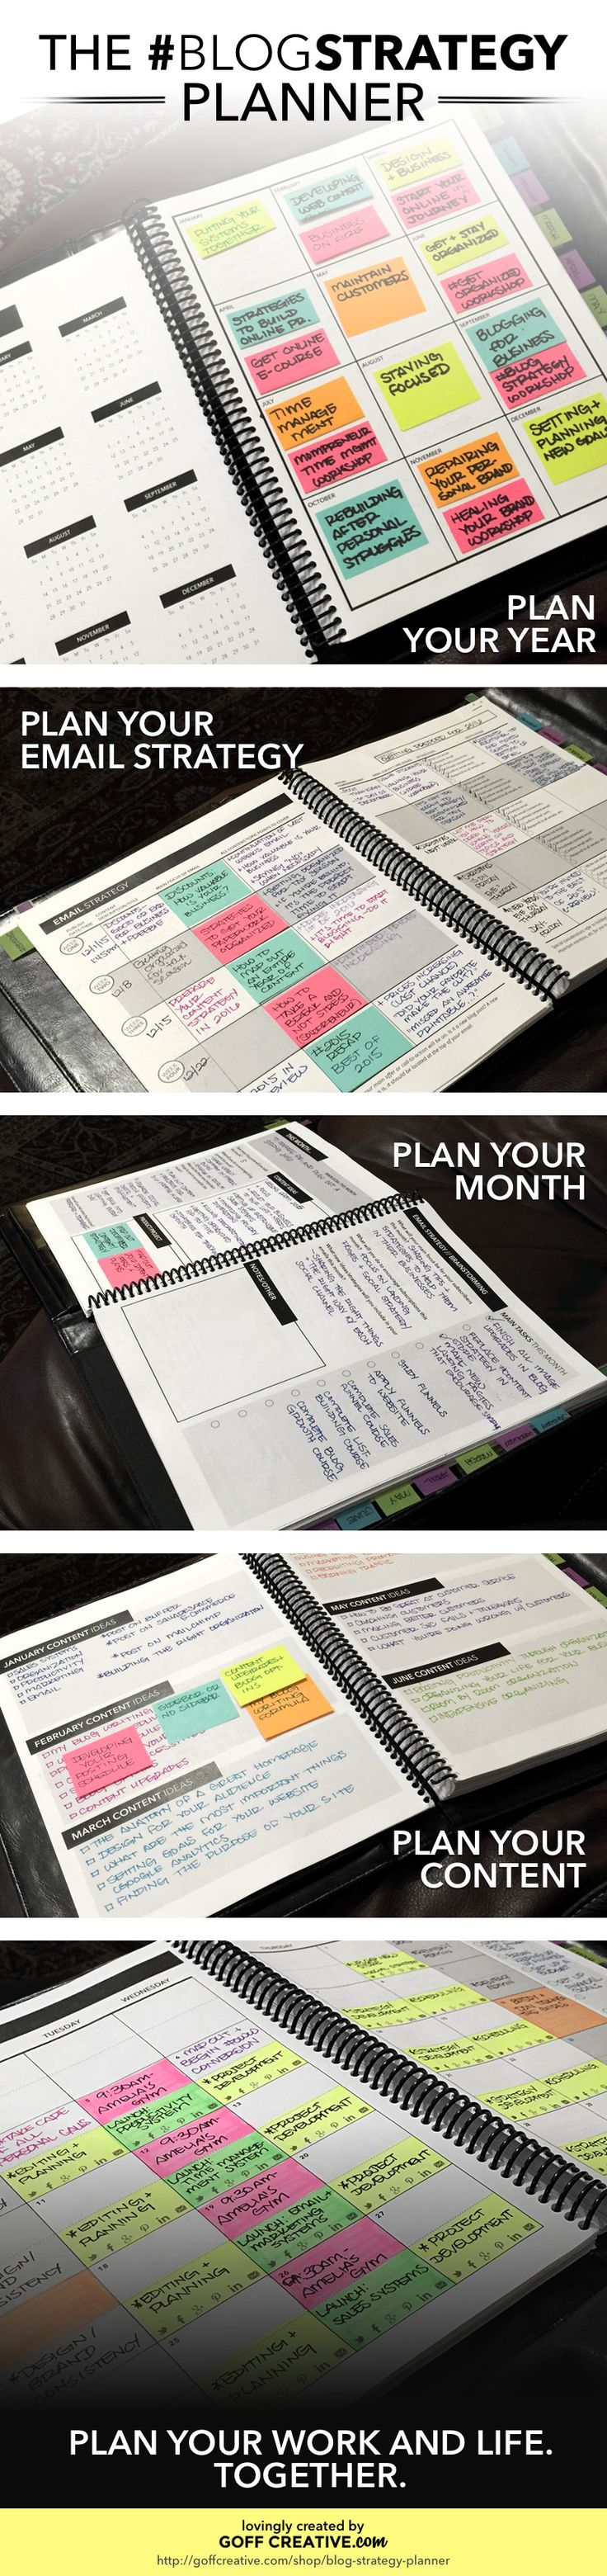 #BlogStrategy Planner Preview | GoffCreative.com                                                                                                                                                                                 More